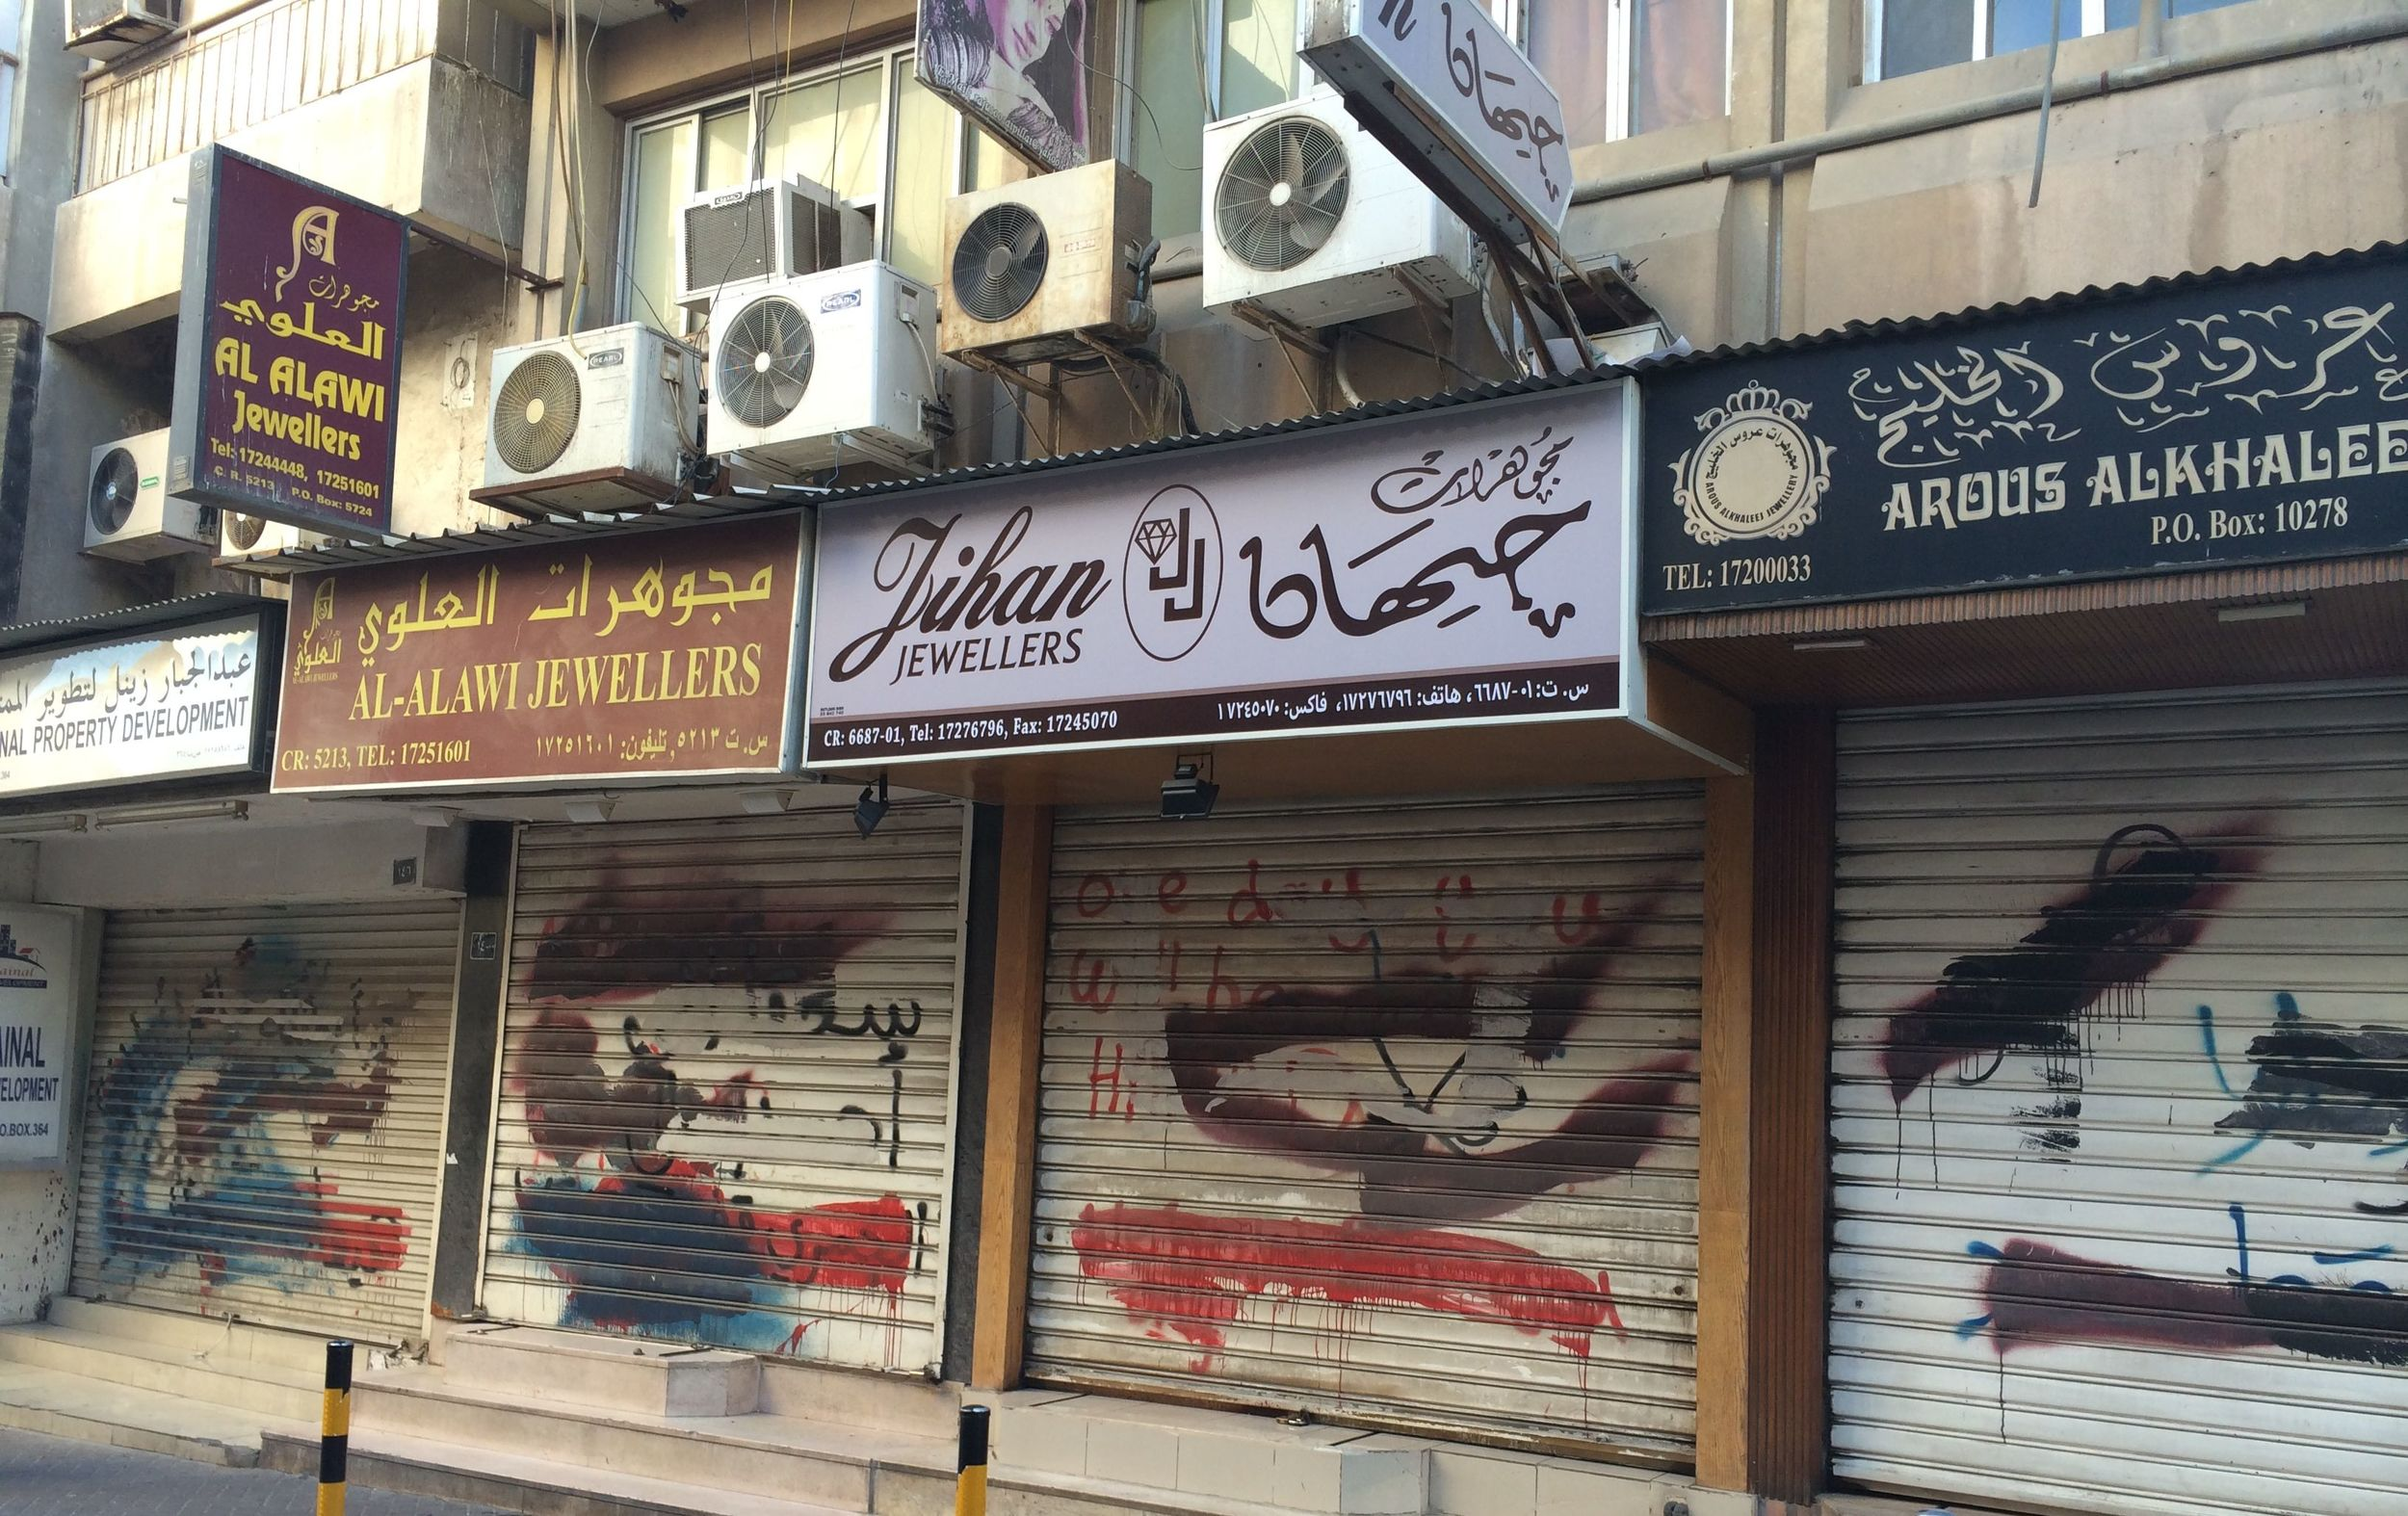 Marked-out graffiti in the souq neighborhood, a reminder of the continuing unrest.